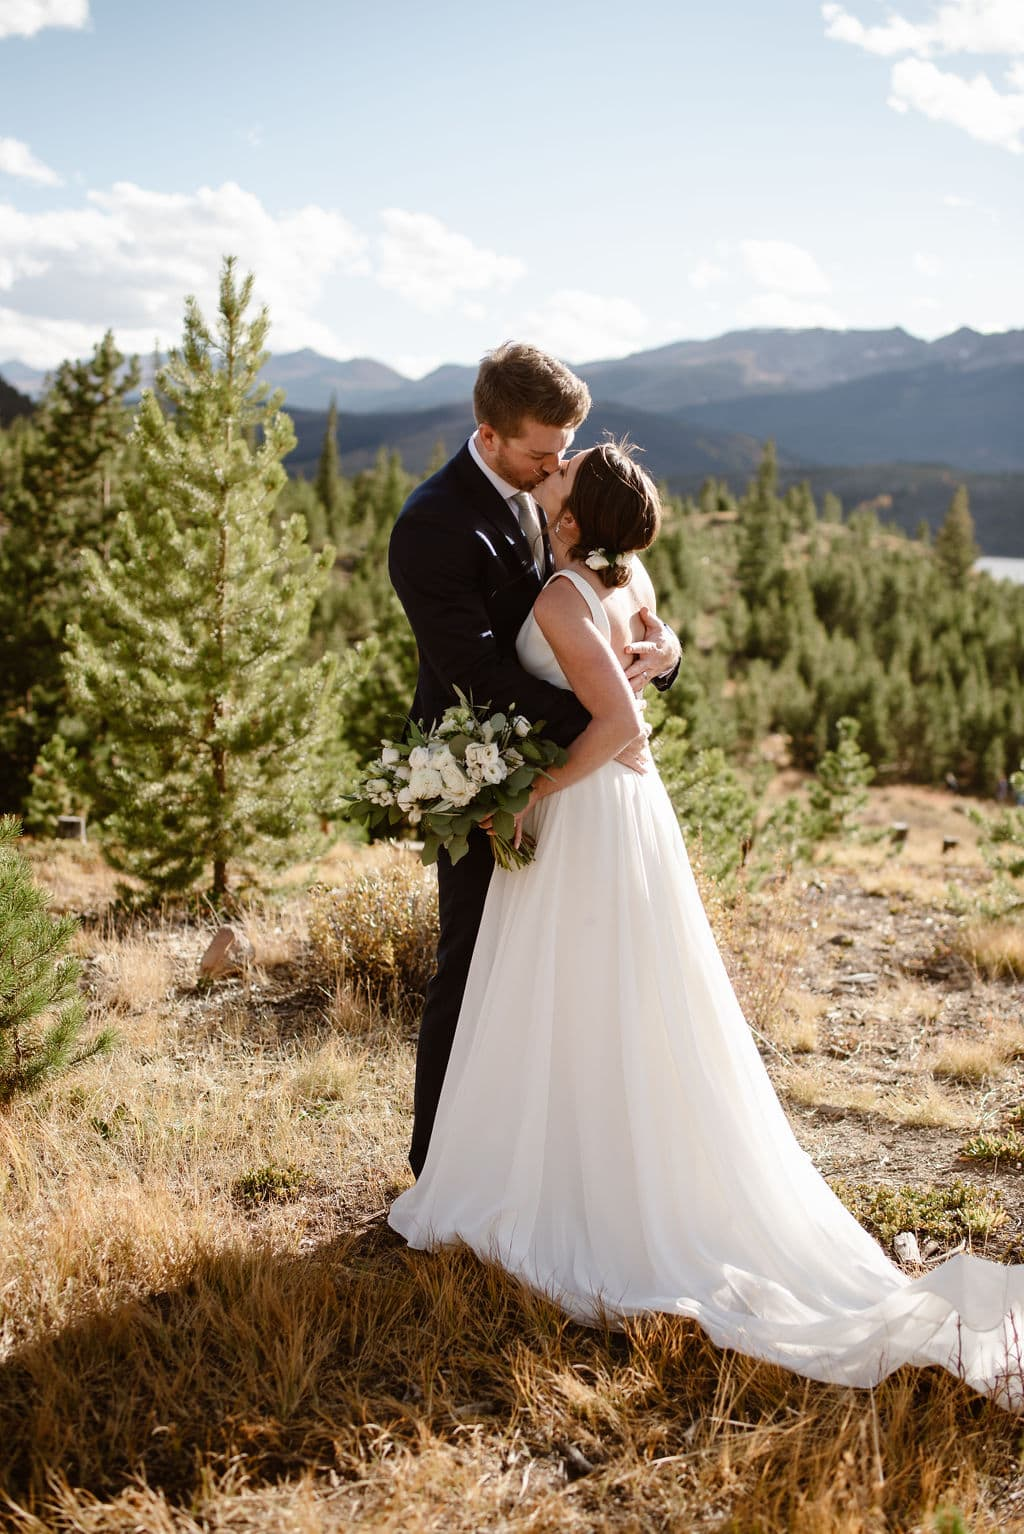 Romantic Bride and Groom Mountain Portraits at Lake Dillon in Colorado